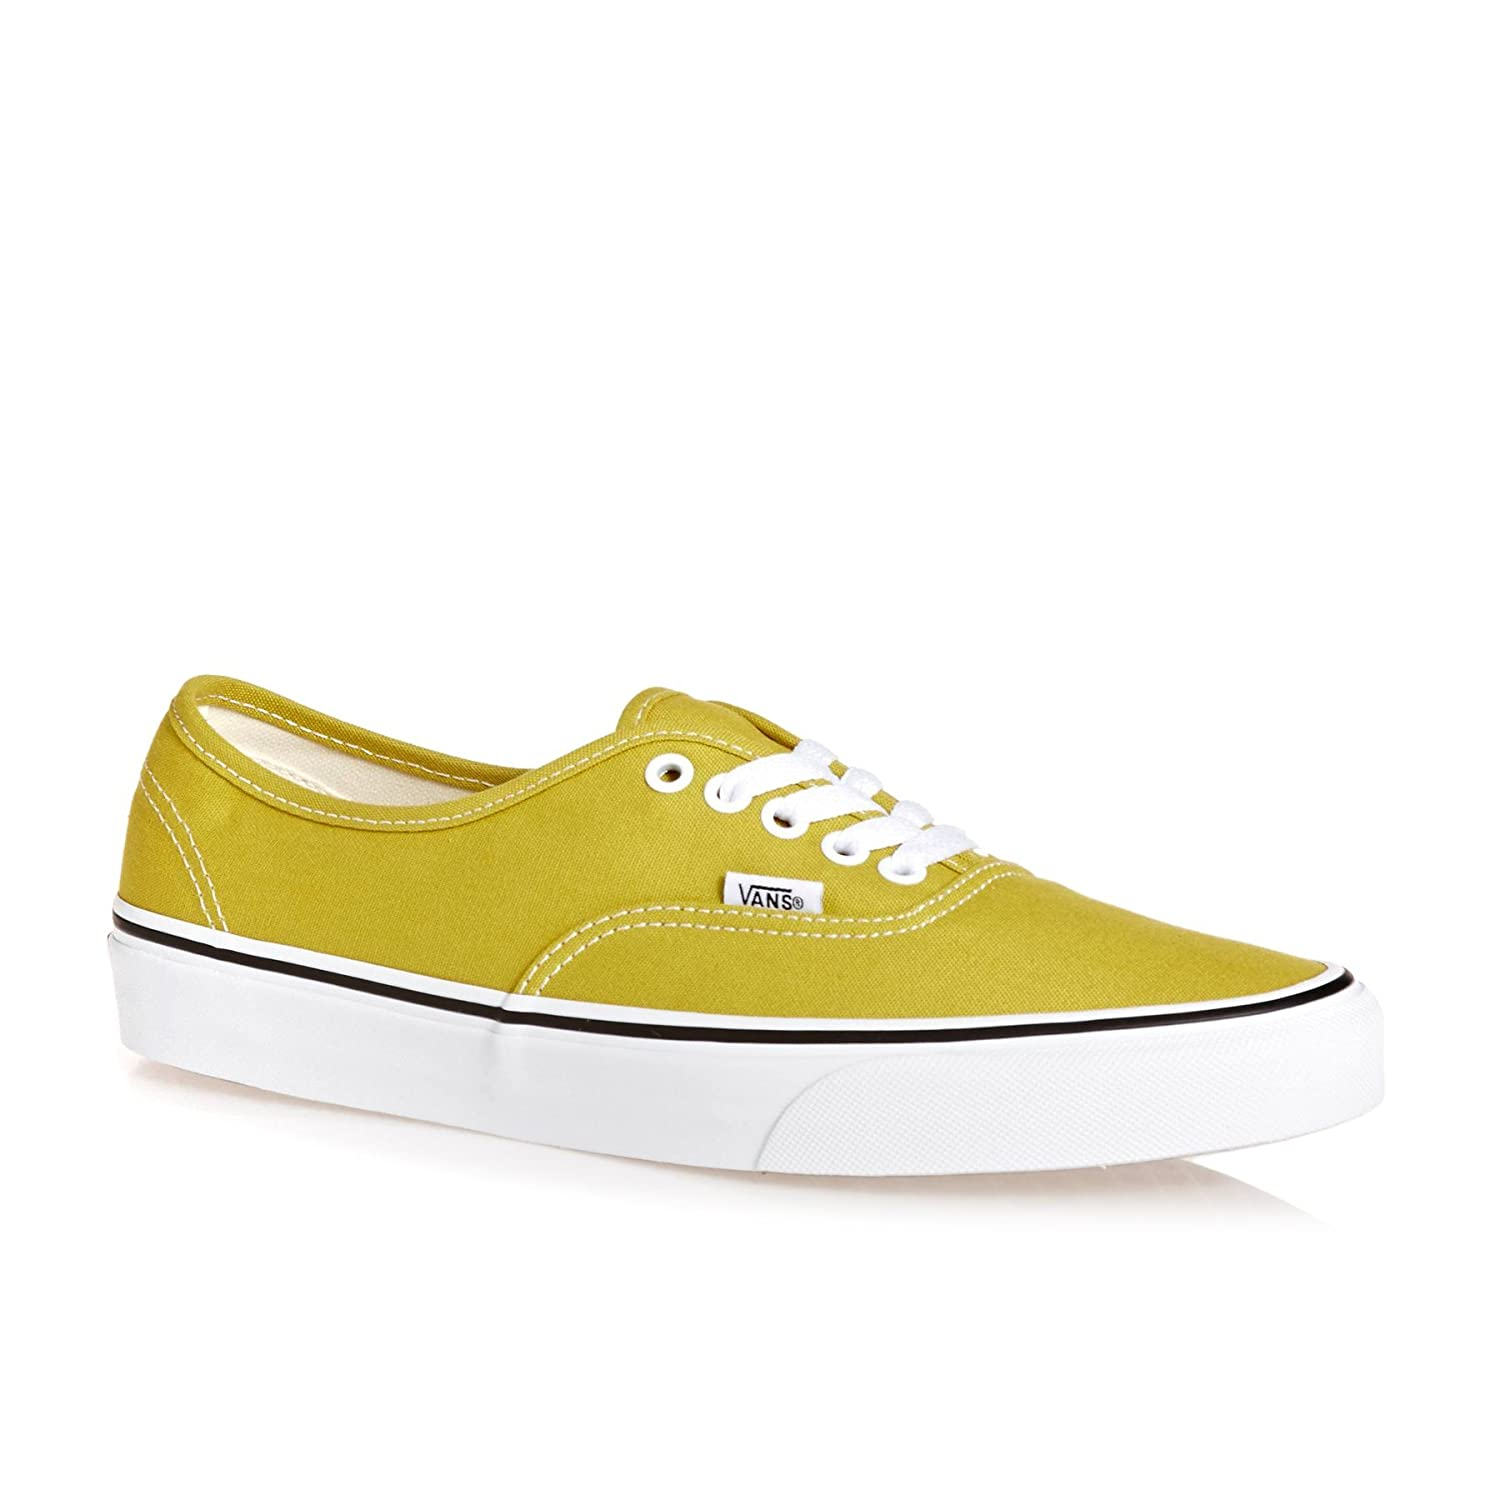 Vans VEE3NVY Unisex Authentic Shoes B07F75DR9K 5.5 B(M) US Women / 4 D(M) US|Cress Green True White